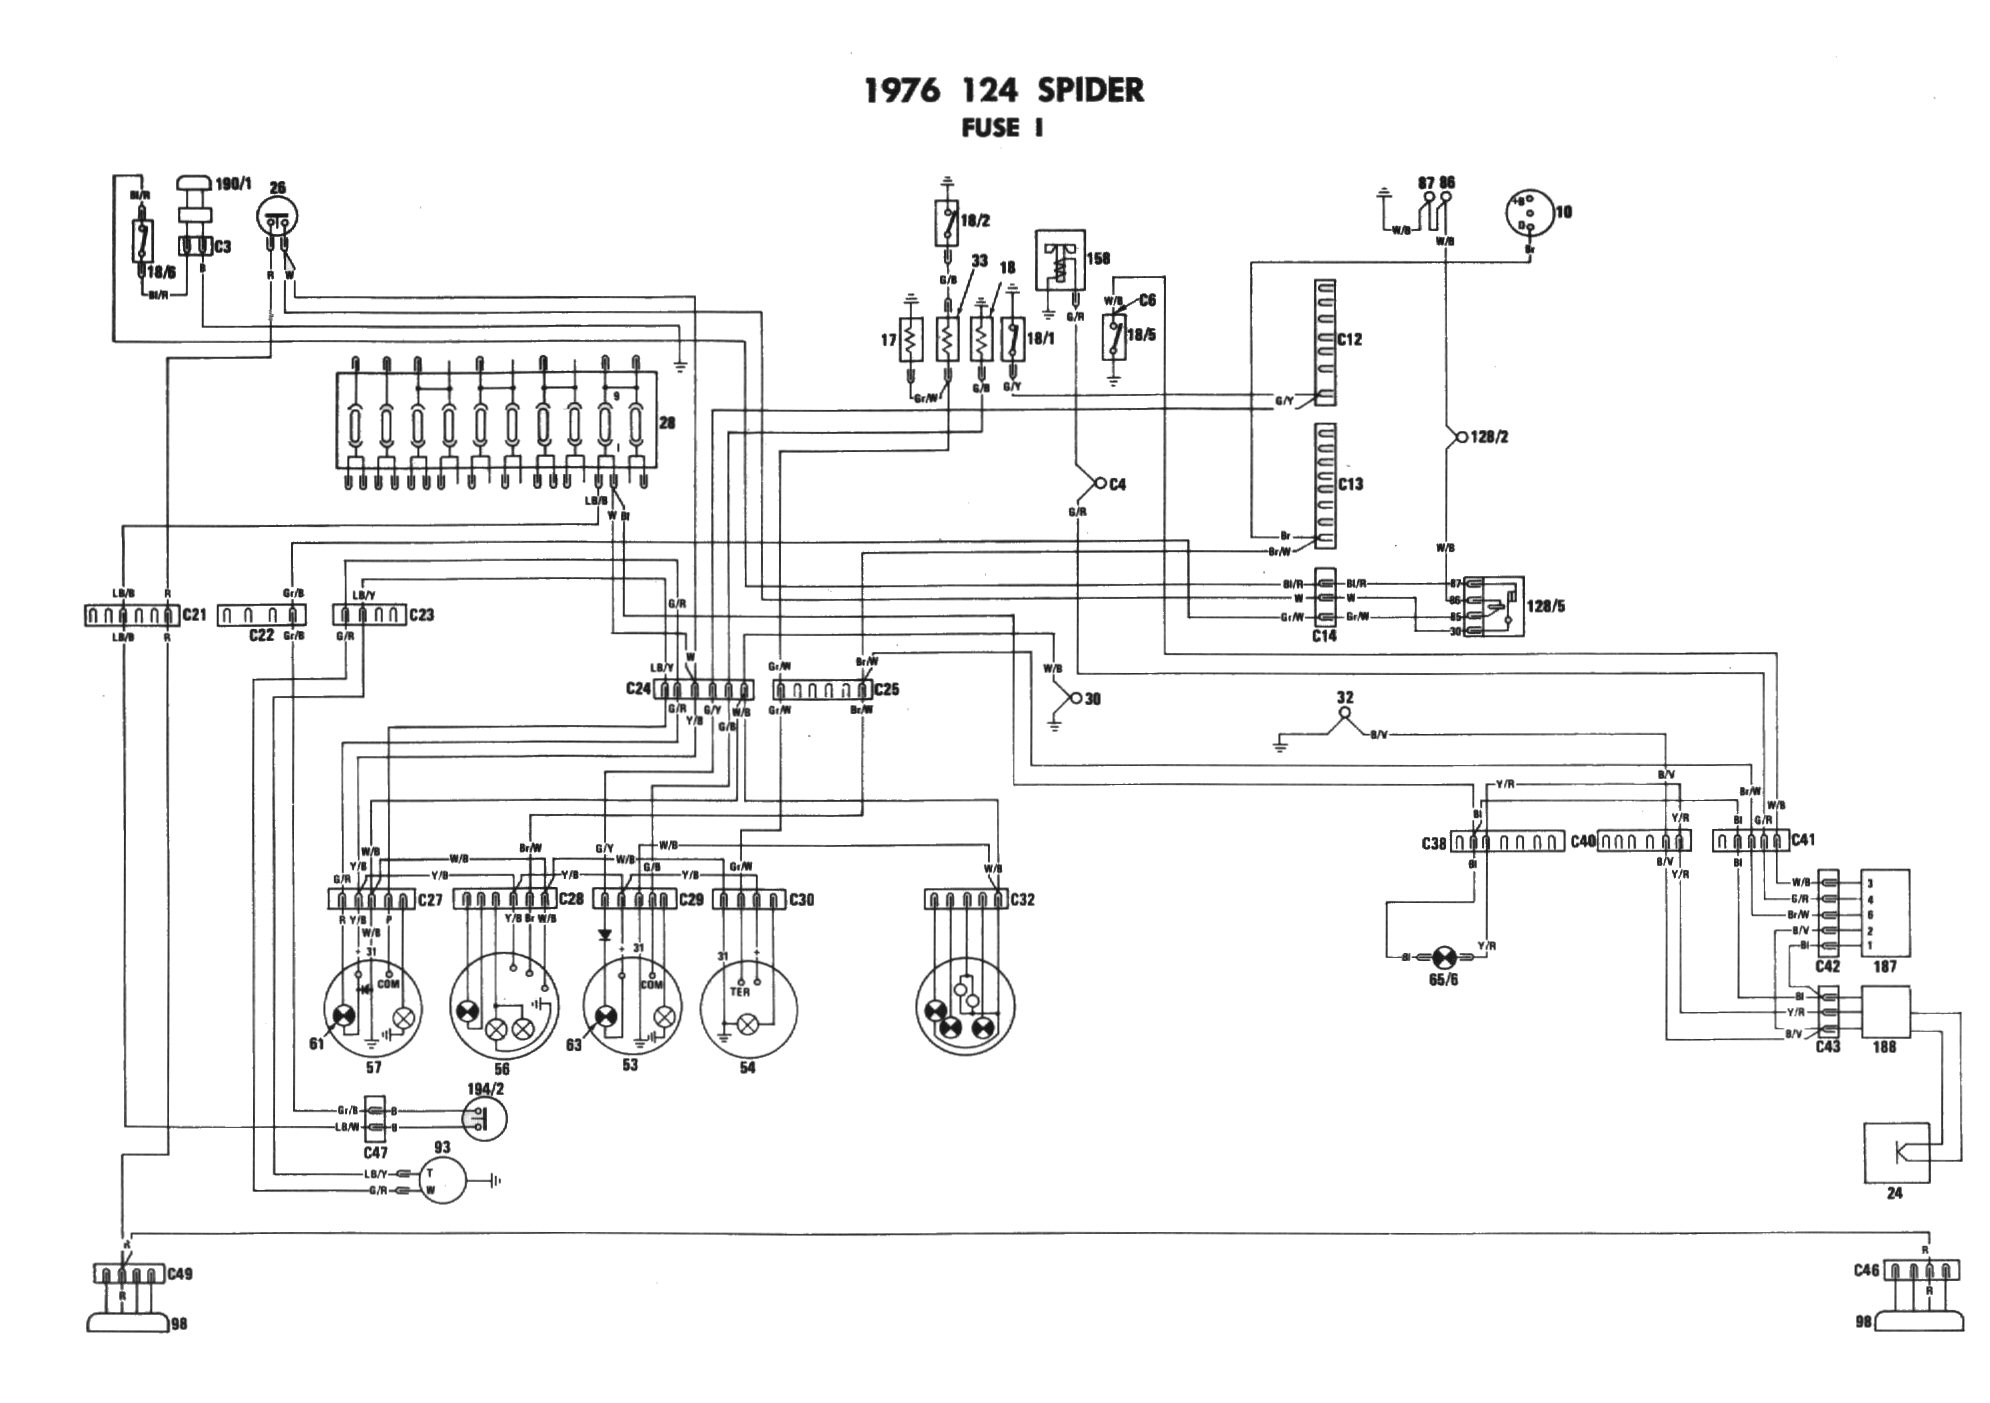 1972 fiat spider wiring diagram